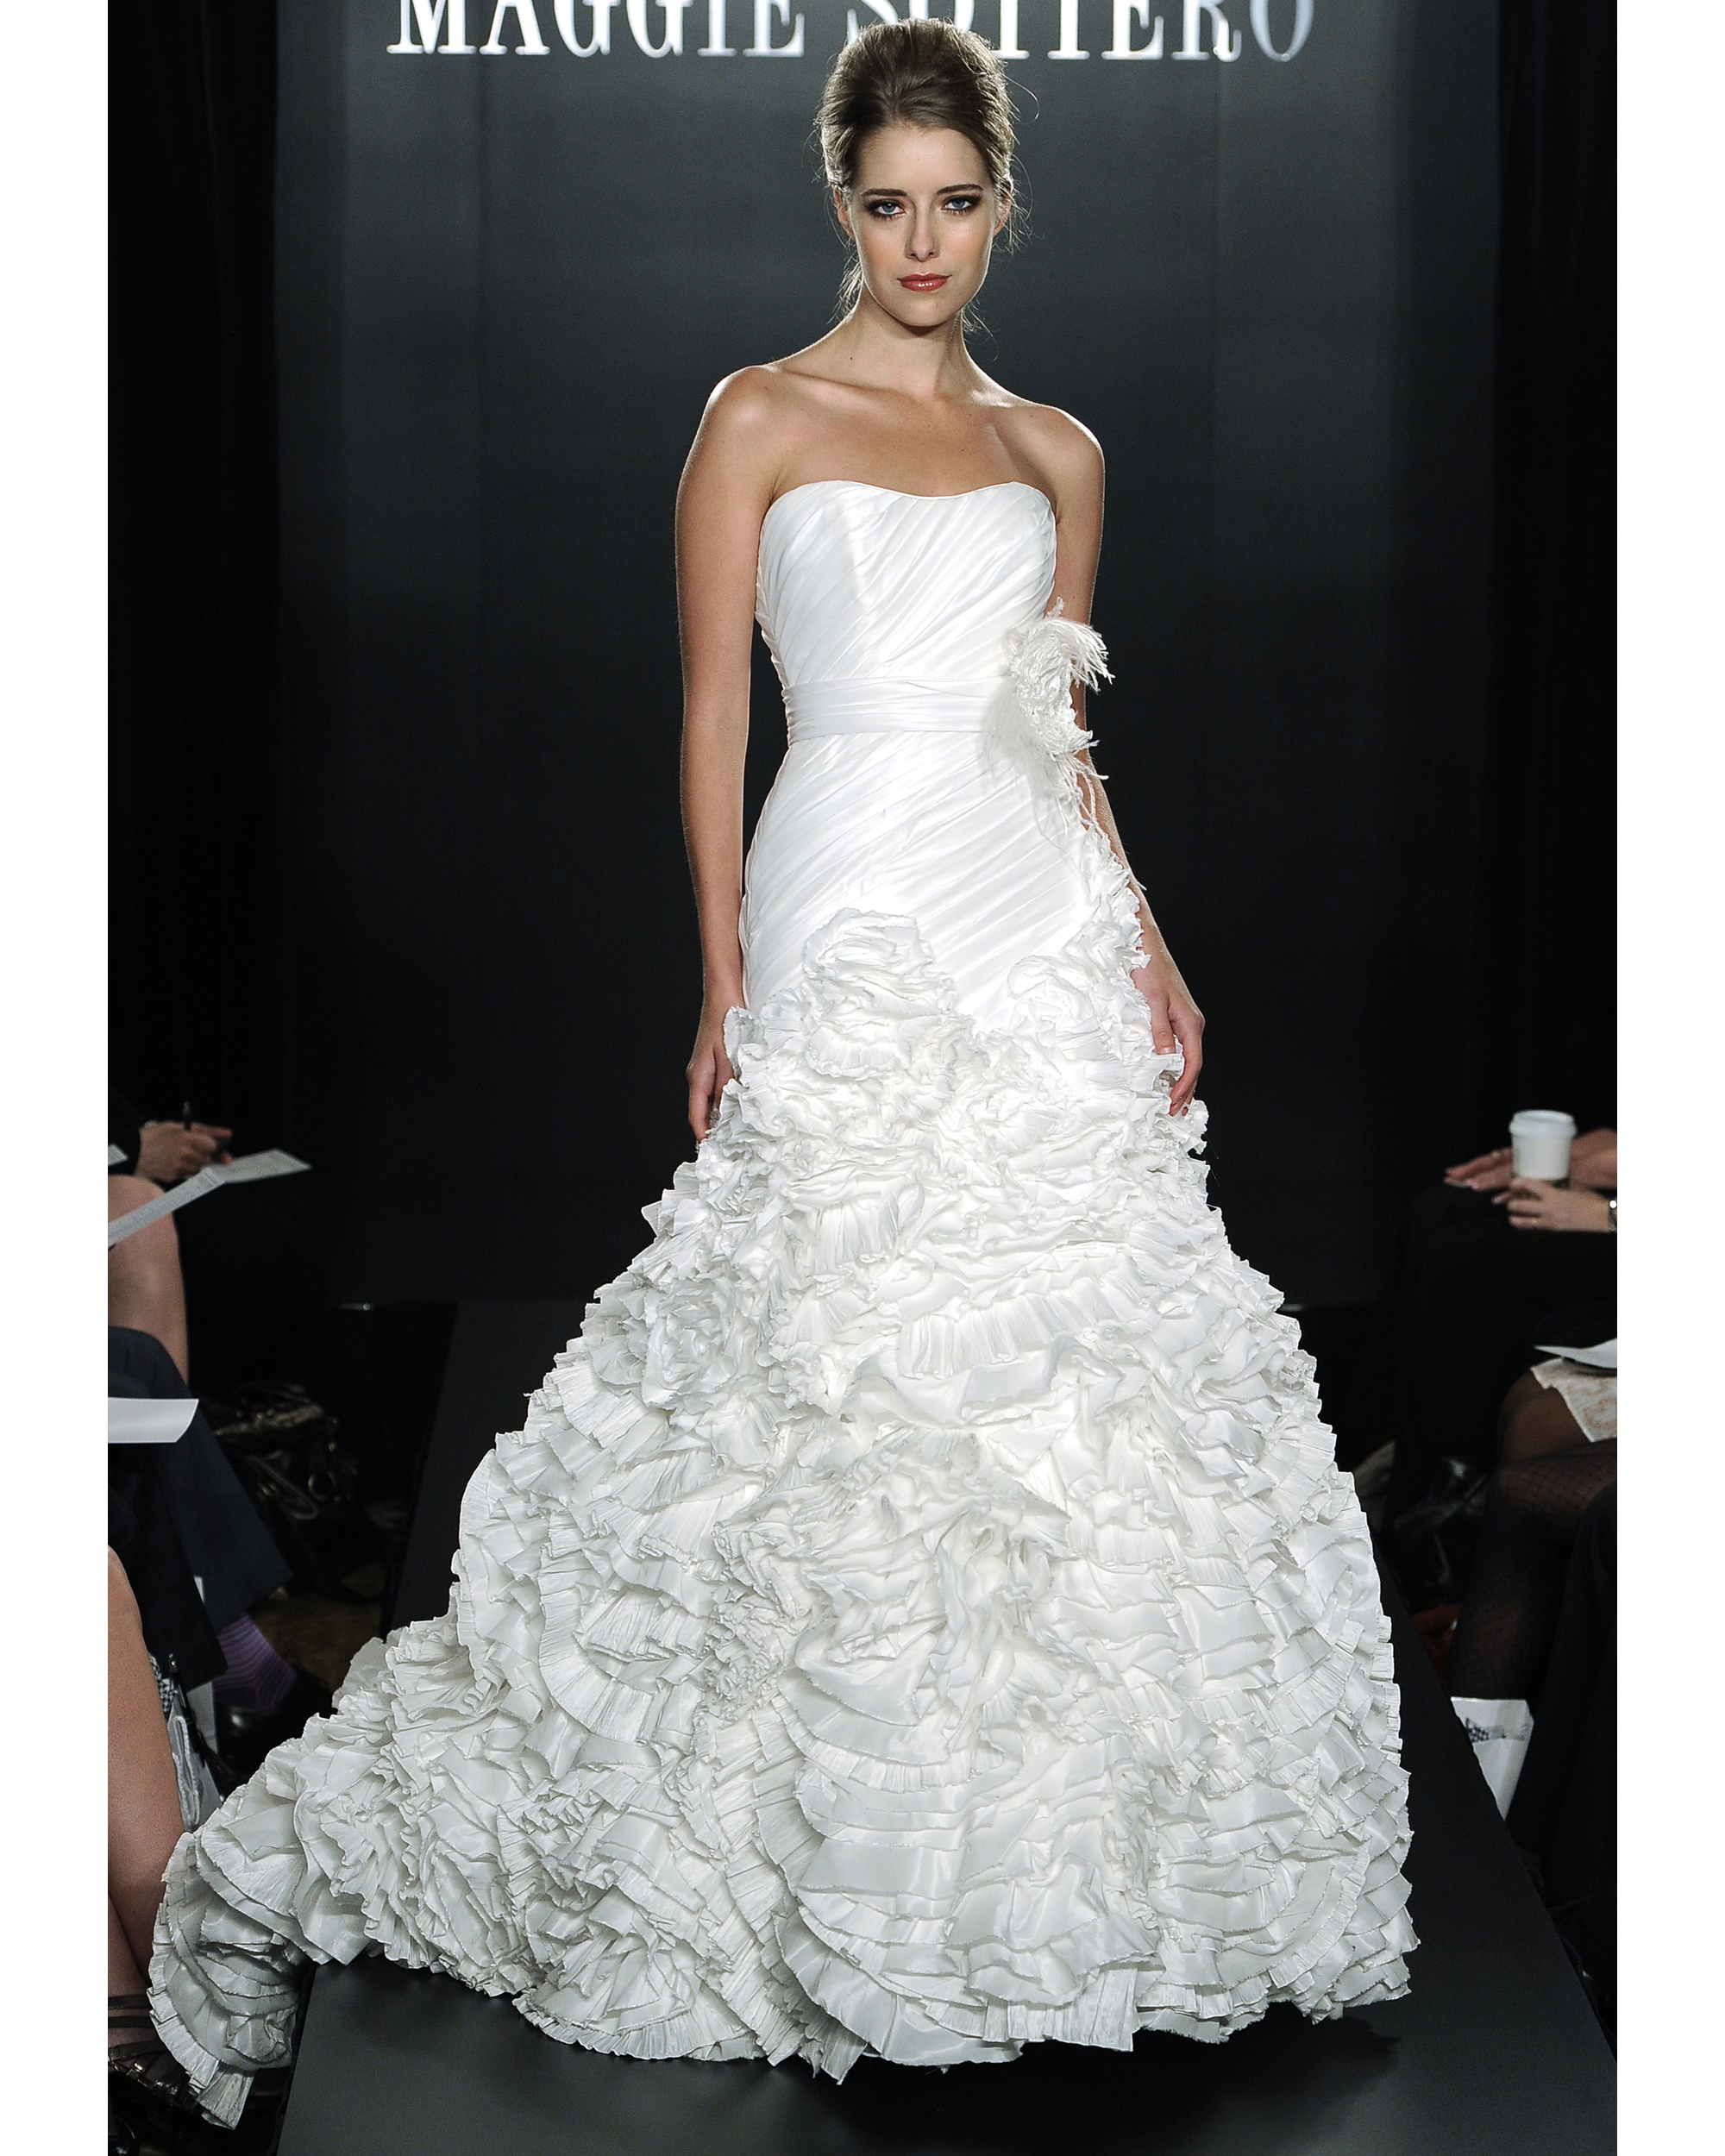 maggie-sottero-fall2012-wd108109_021.jpg